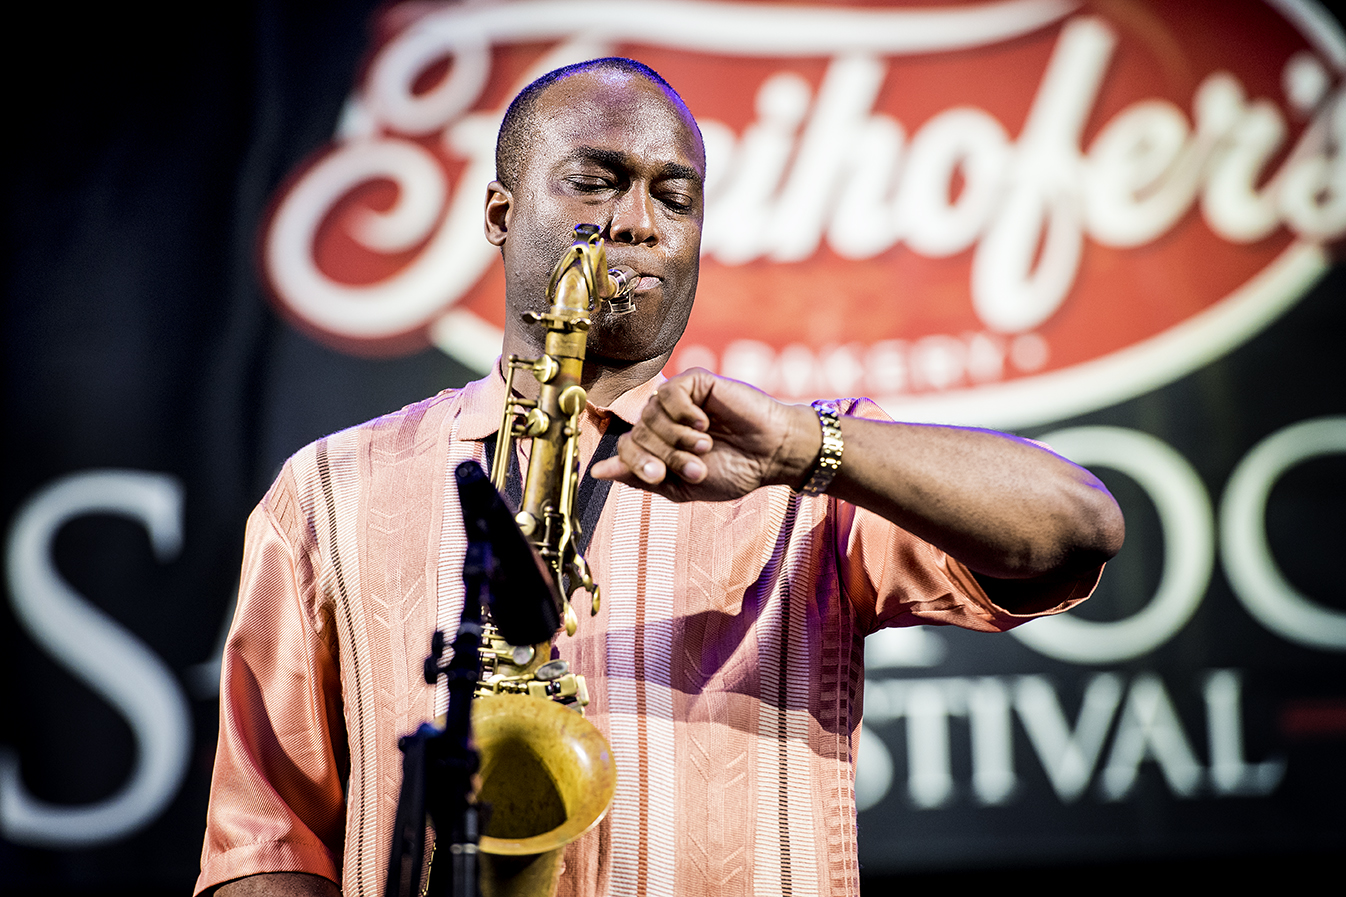 James Carter at the 2019 Saratoga Jazz Festival